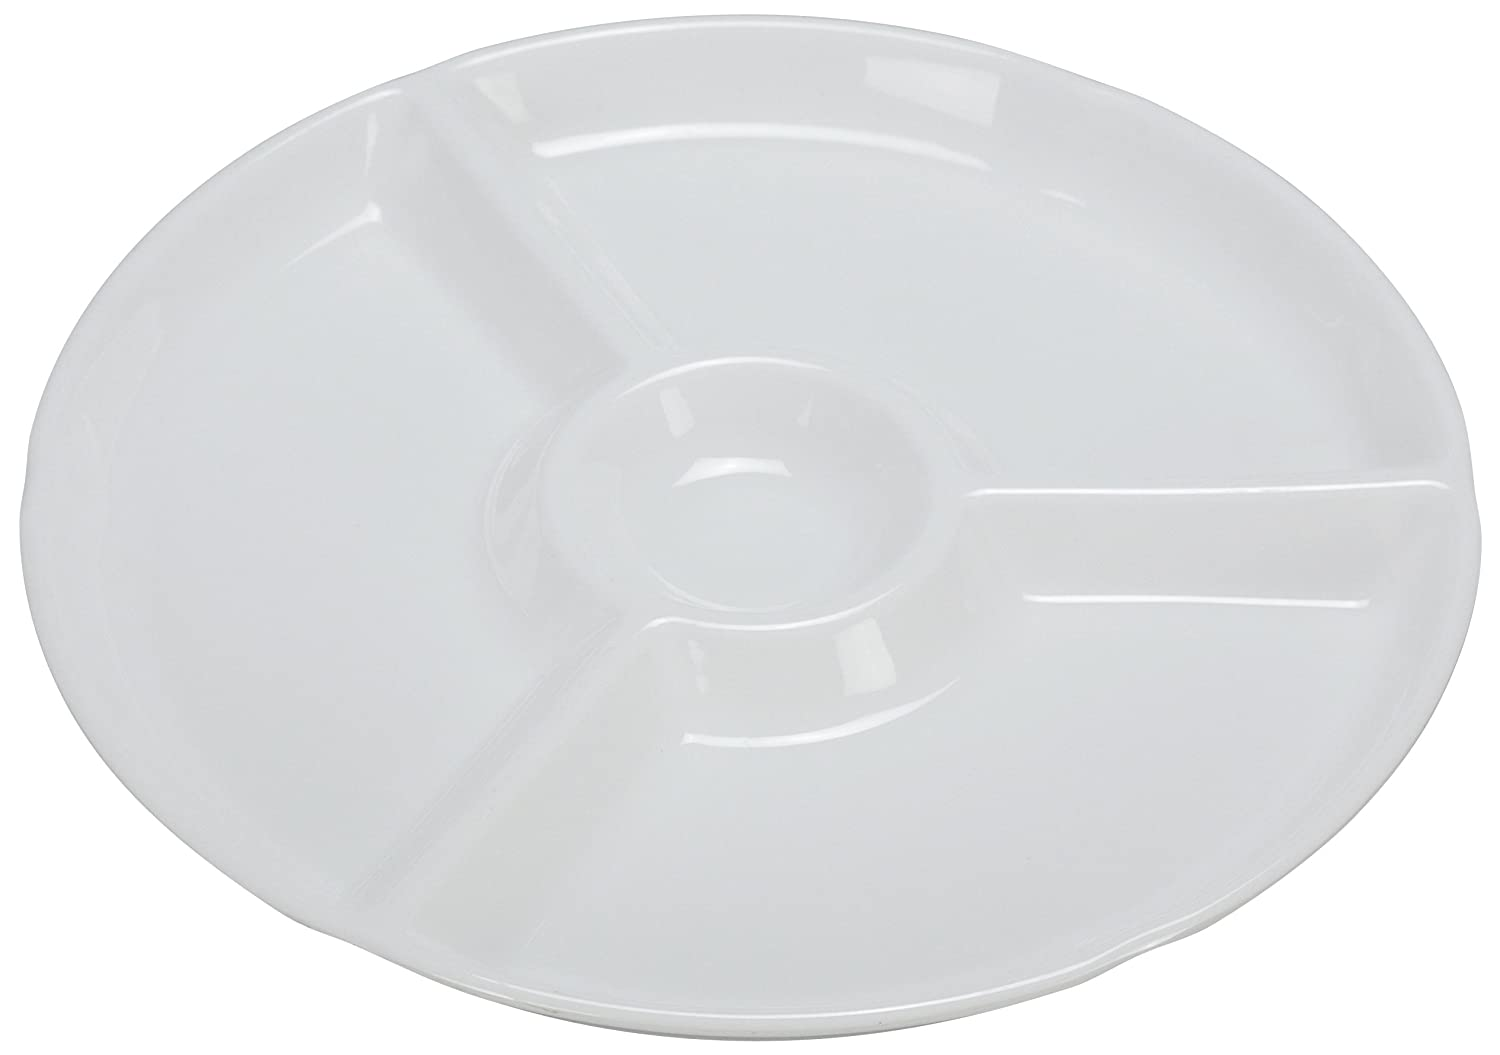 Yanco RM-821 Rome Quality Selling inspection 4-Compartment Plate Round 1 12.25